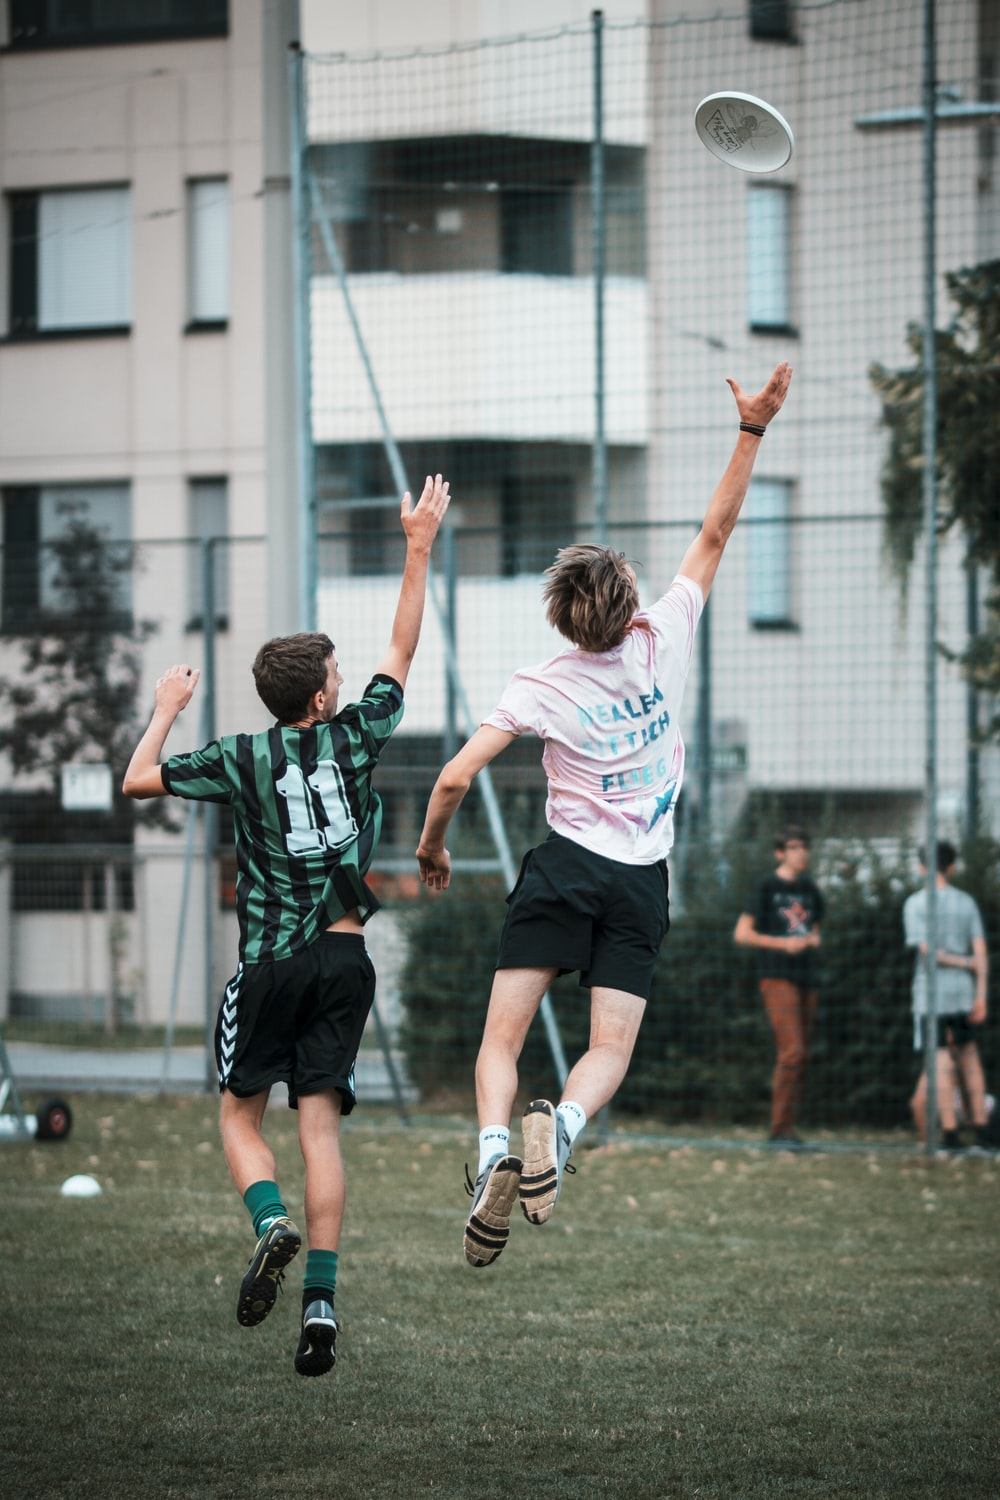 two men reaching frisbee while jumping